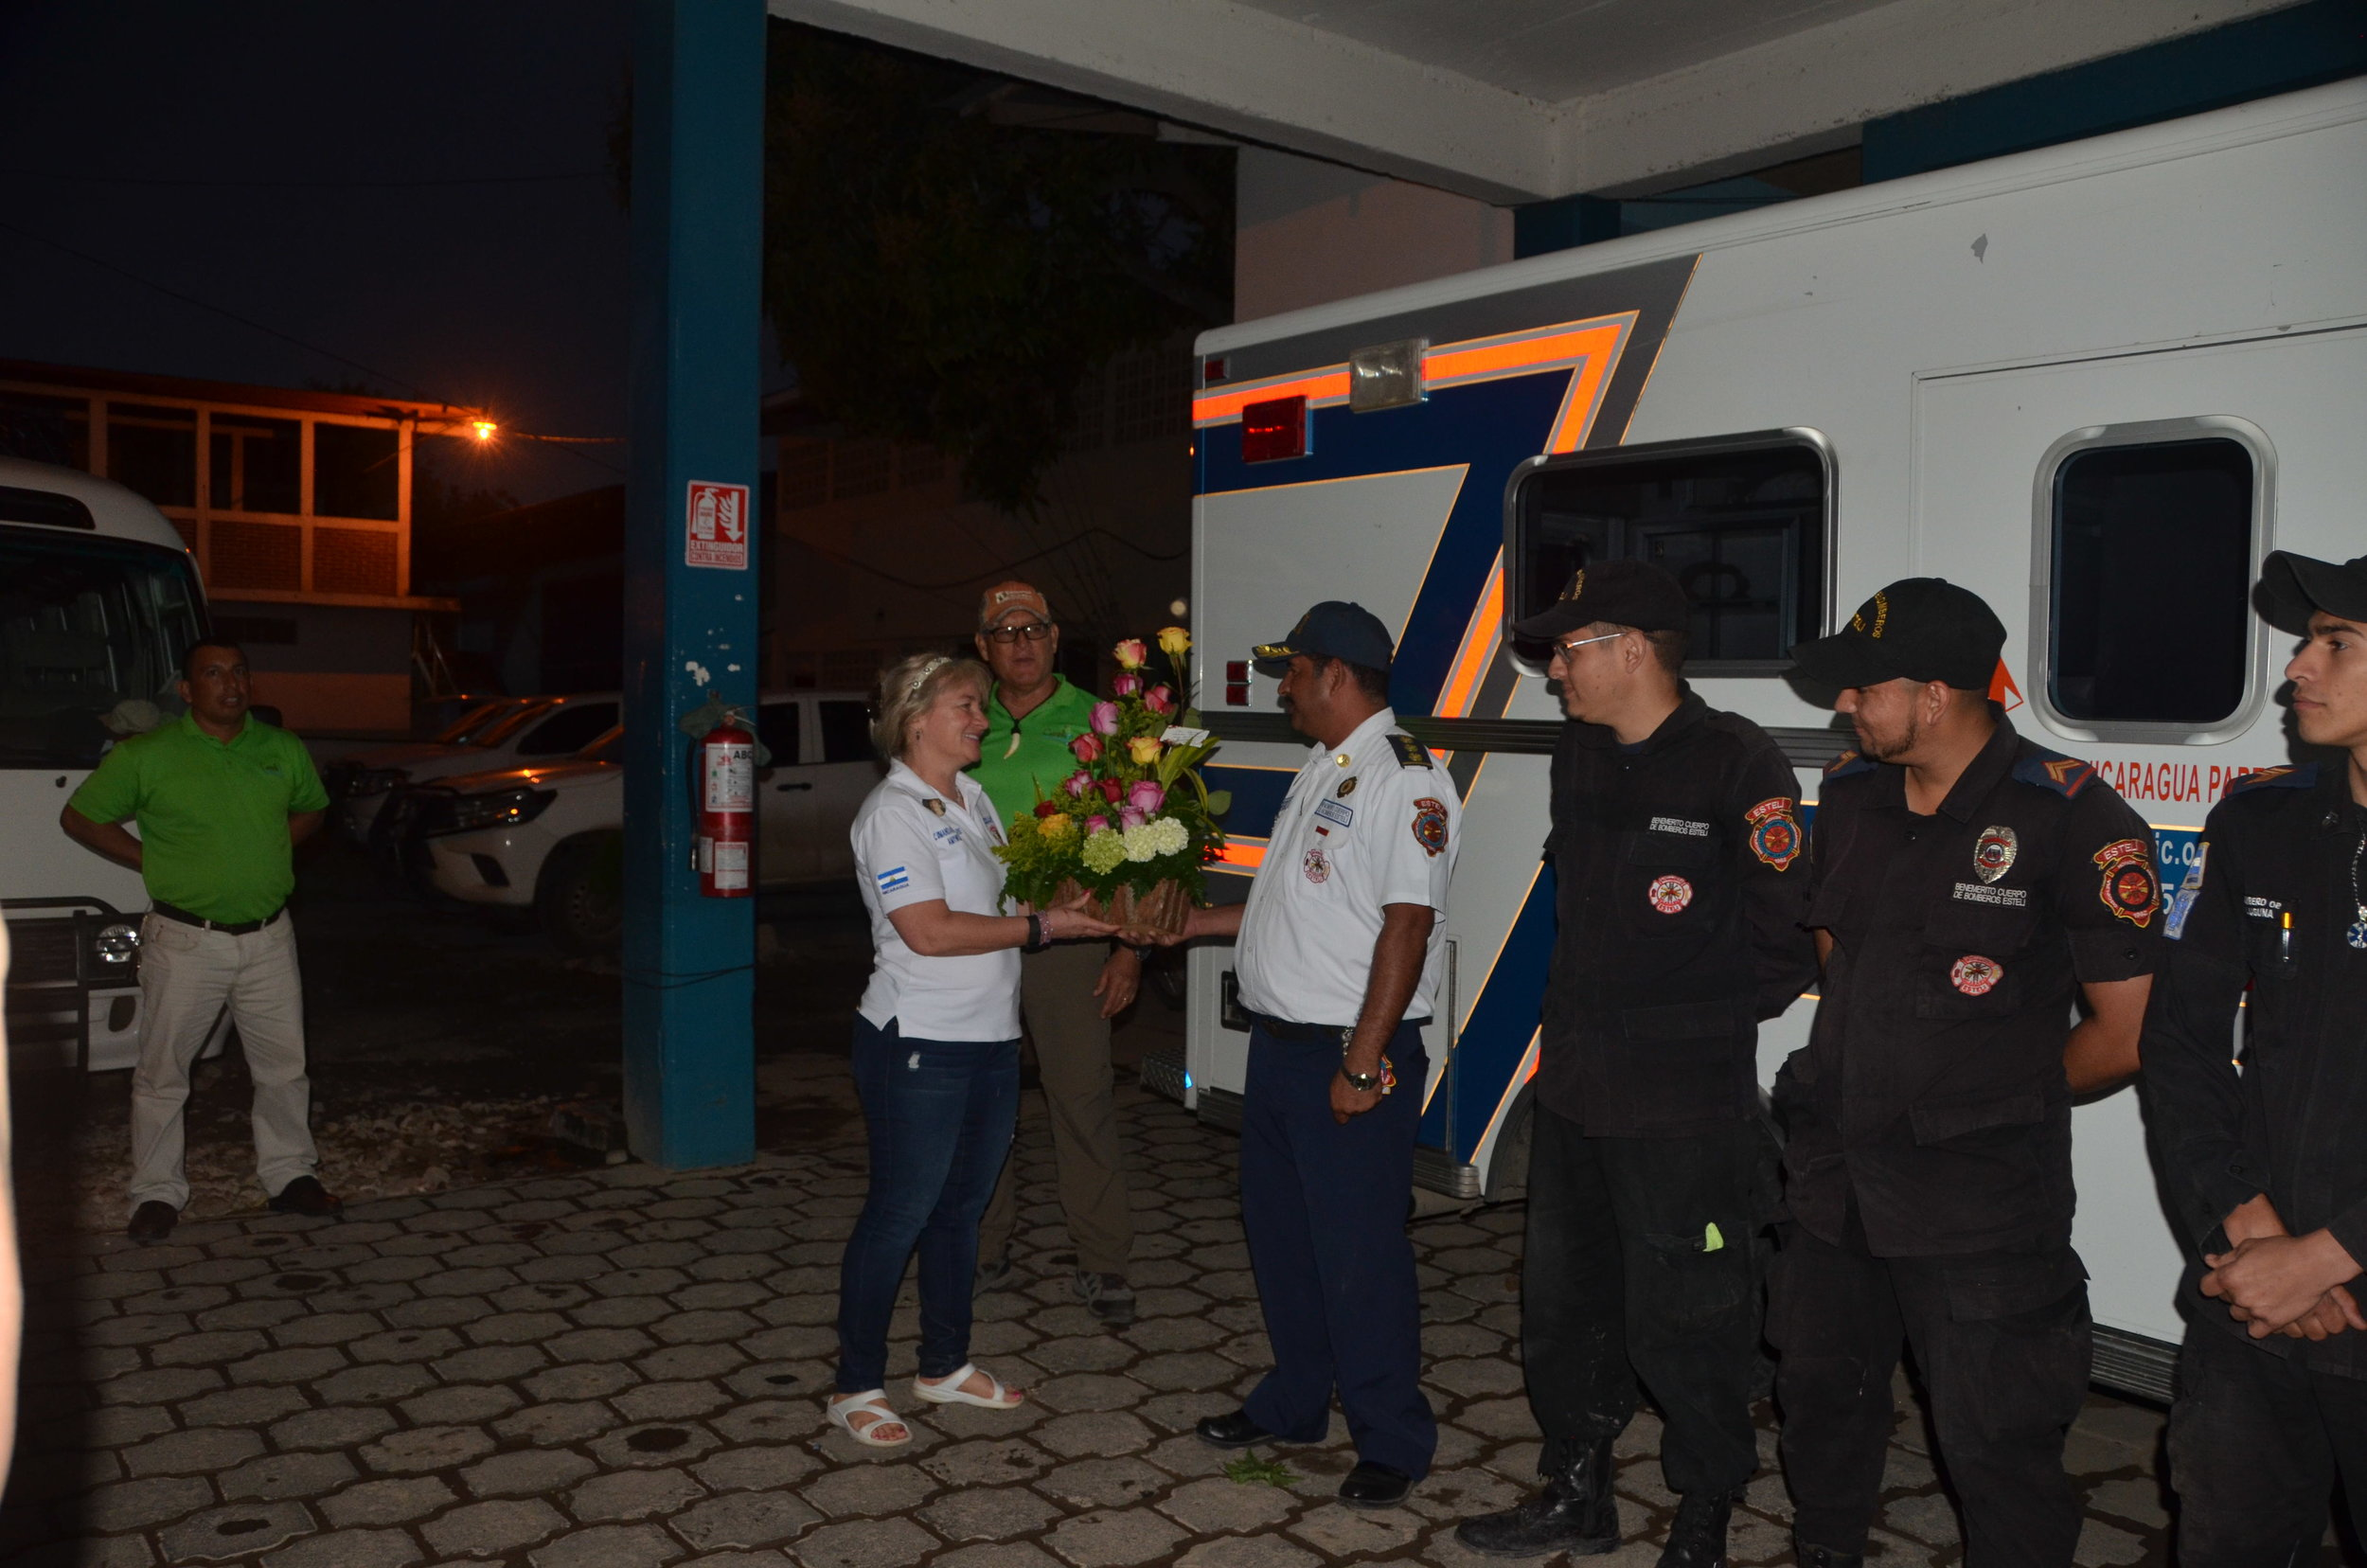 The trucks in the Esteli fire department were donated by W/NP, they are flown down here. The city is so grateful. They gave Amy flowers because a little over a week ago was her birthday. They had to honor her. She's so loved!